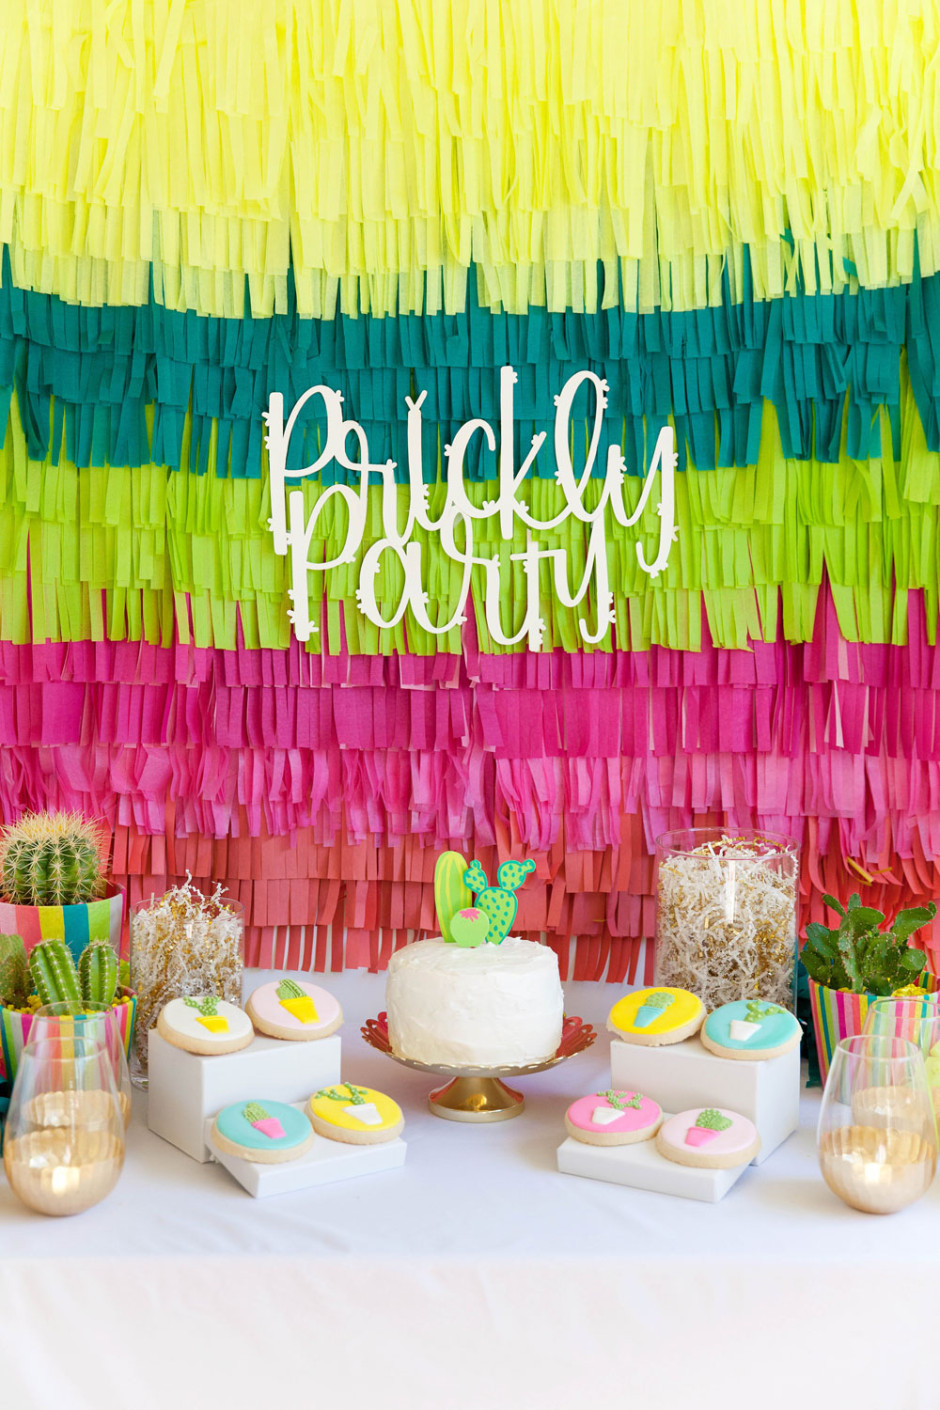 DIY CACTUS PARTY - Tell Love and PartyTell Love and Party